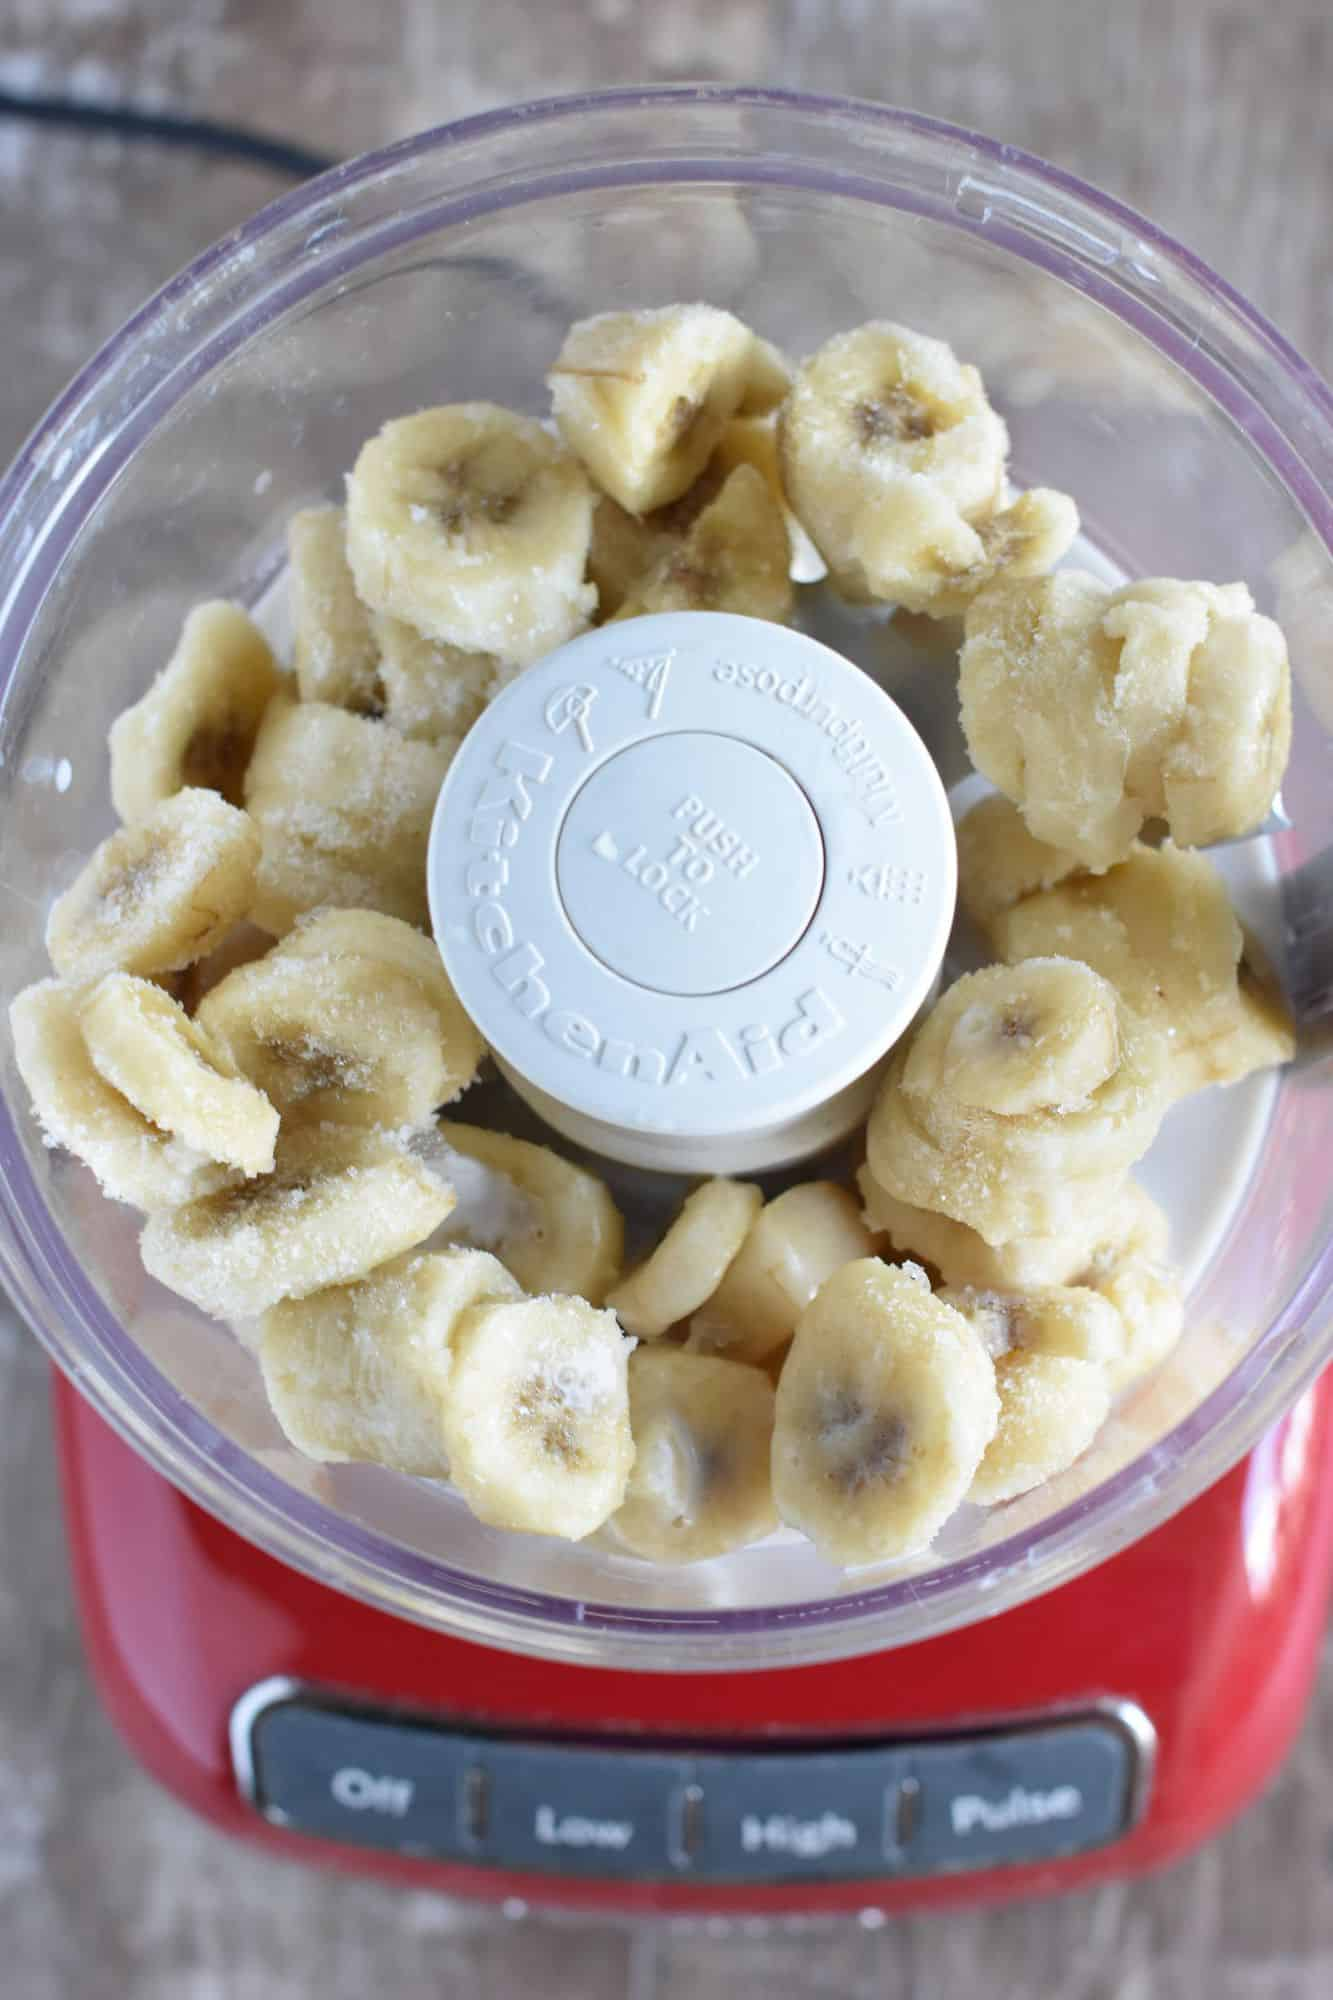 bananas and milk added to food processor